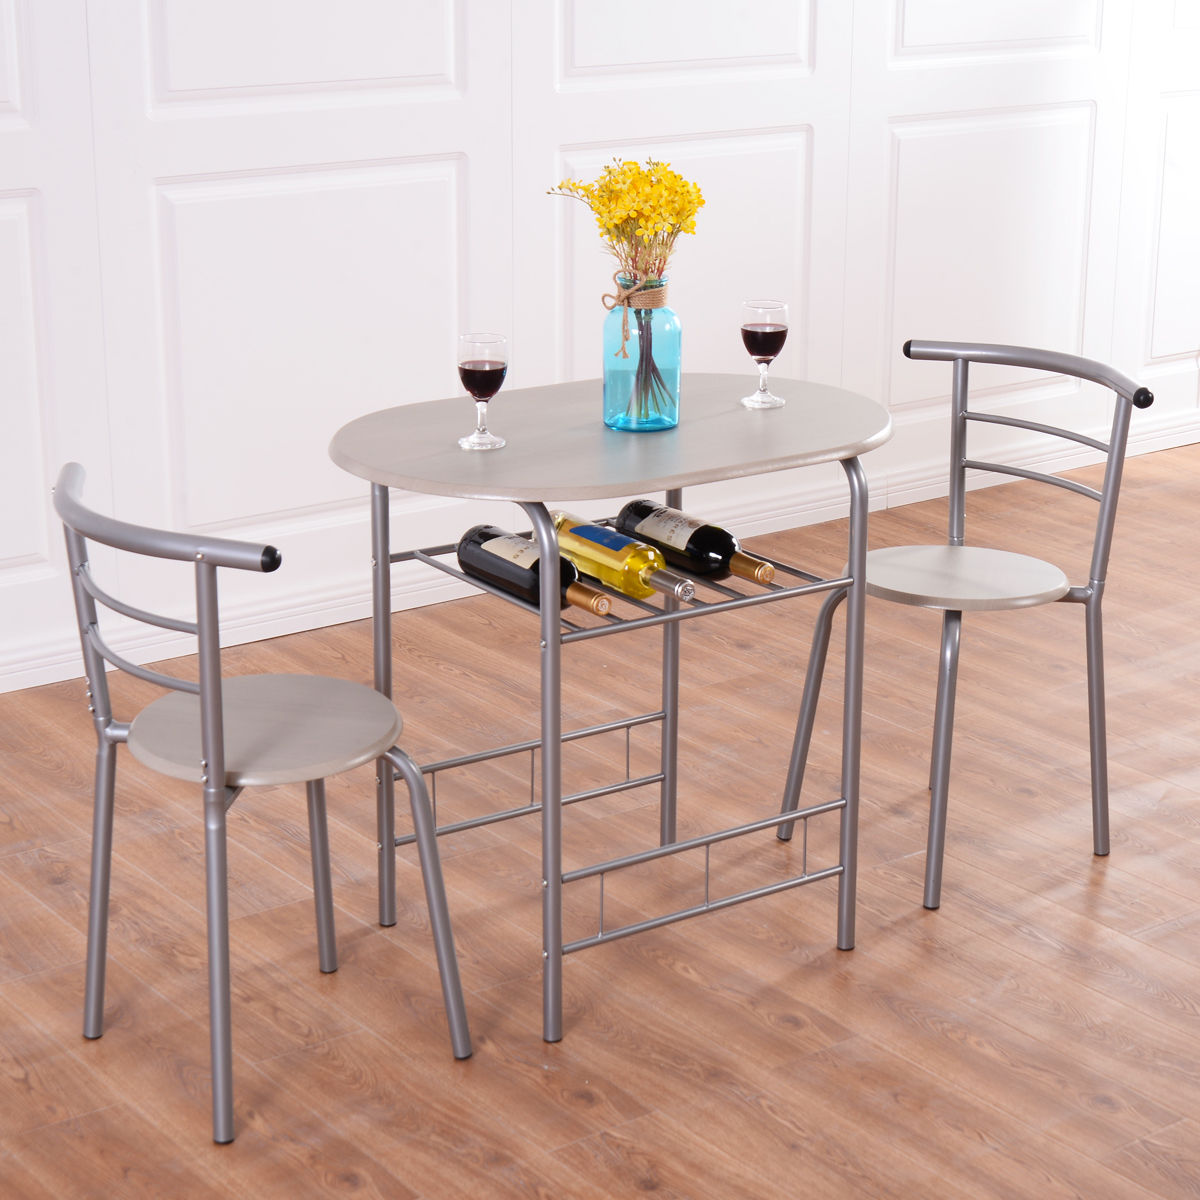 Costway 3 Piece Dining Set Table 2 Chairs Bistro Pub Home Kitchen Breakfast  Furniture